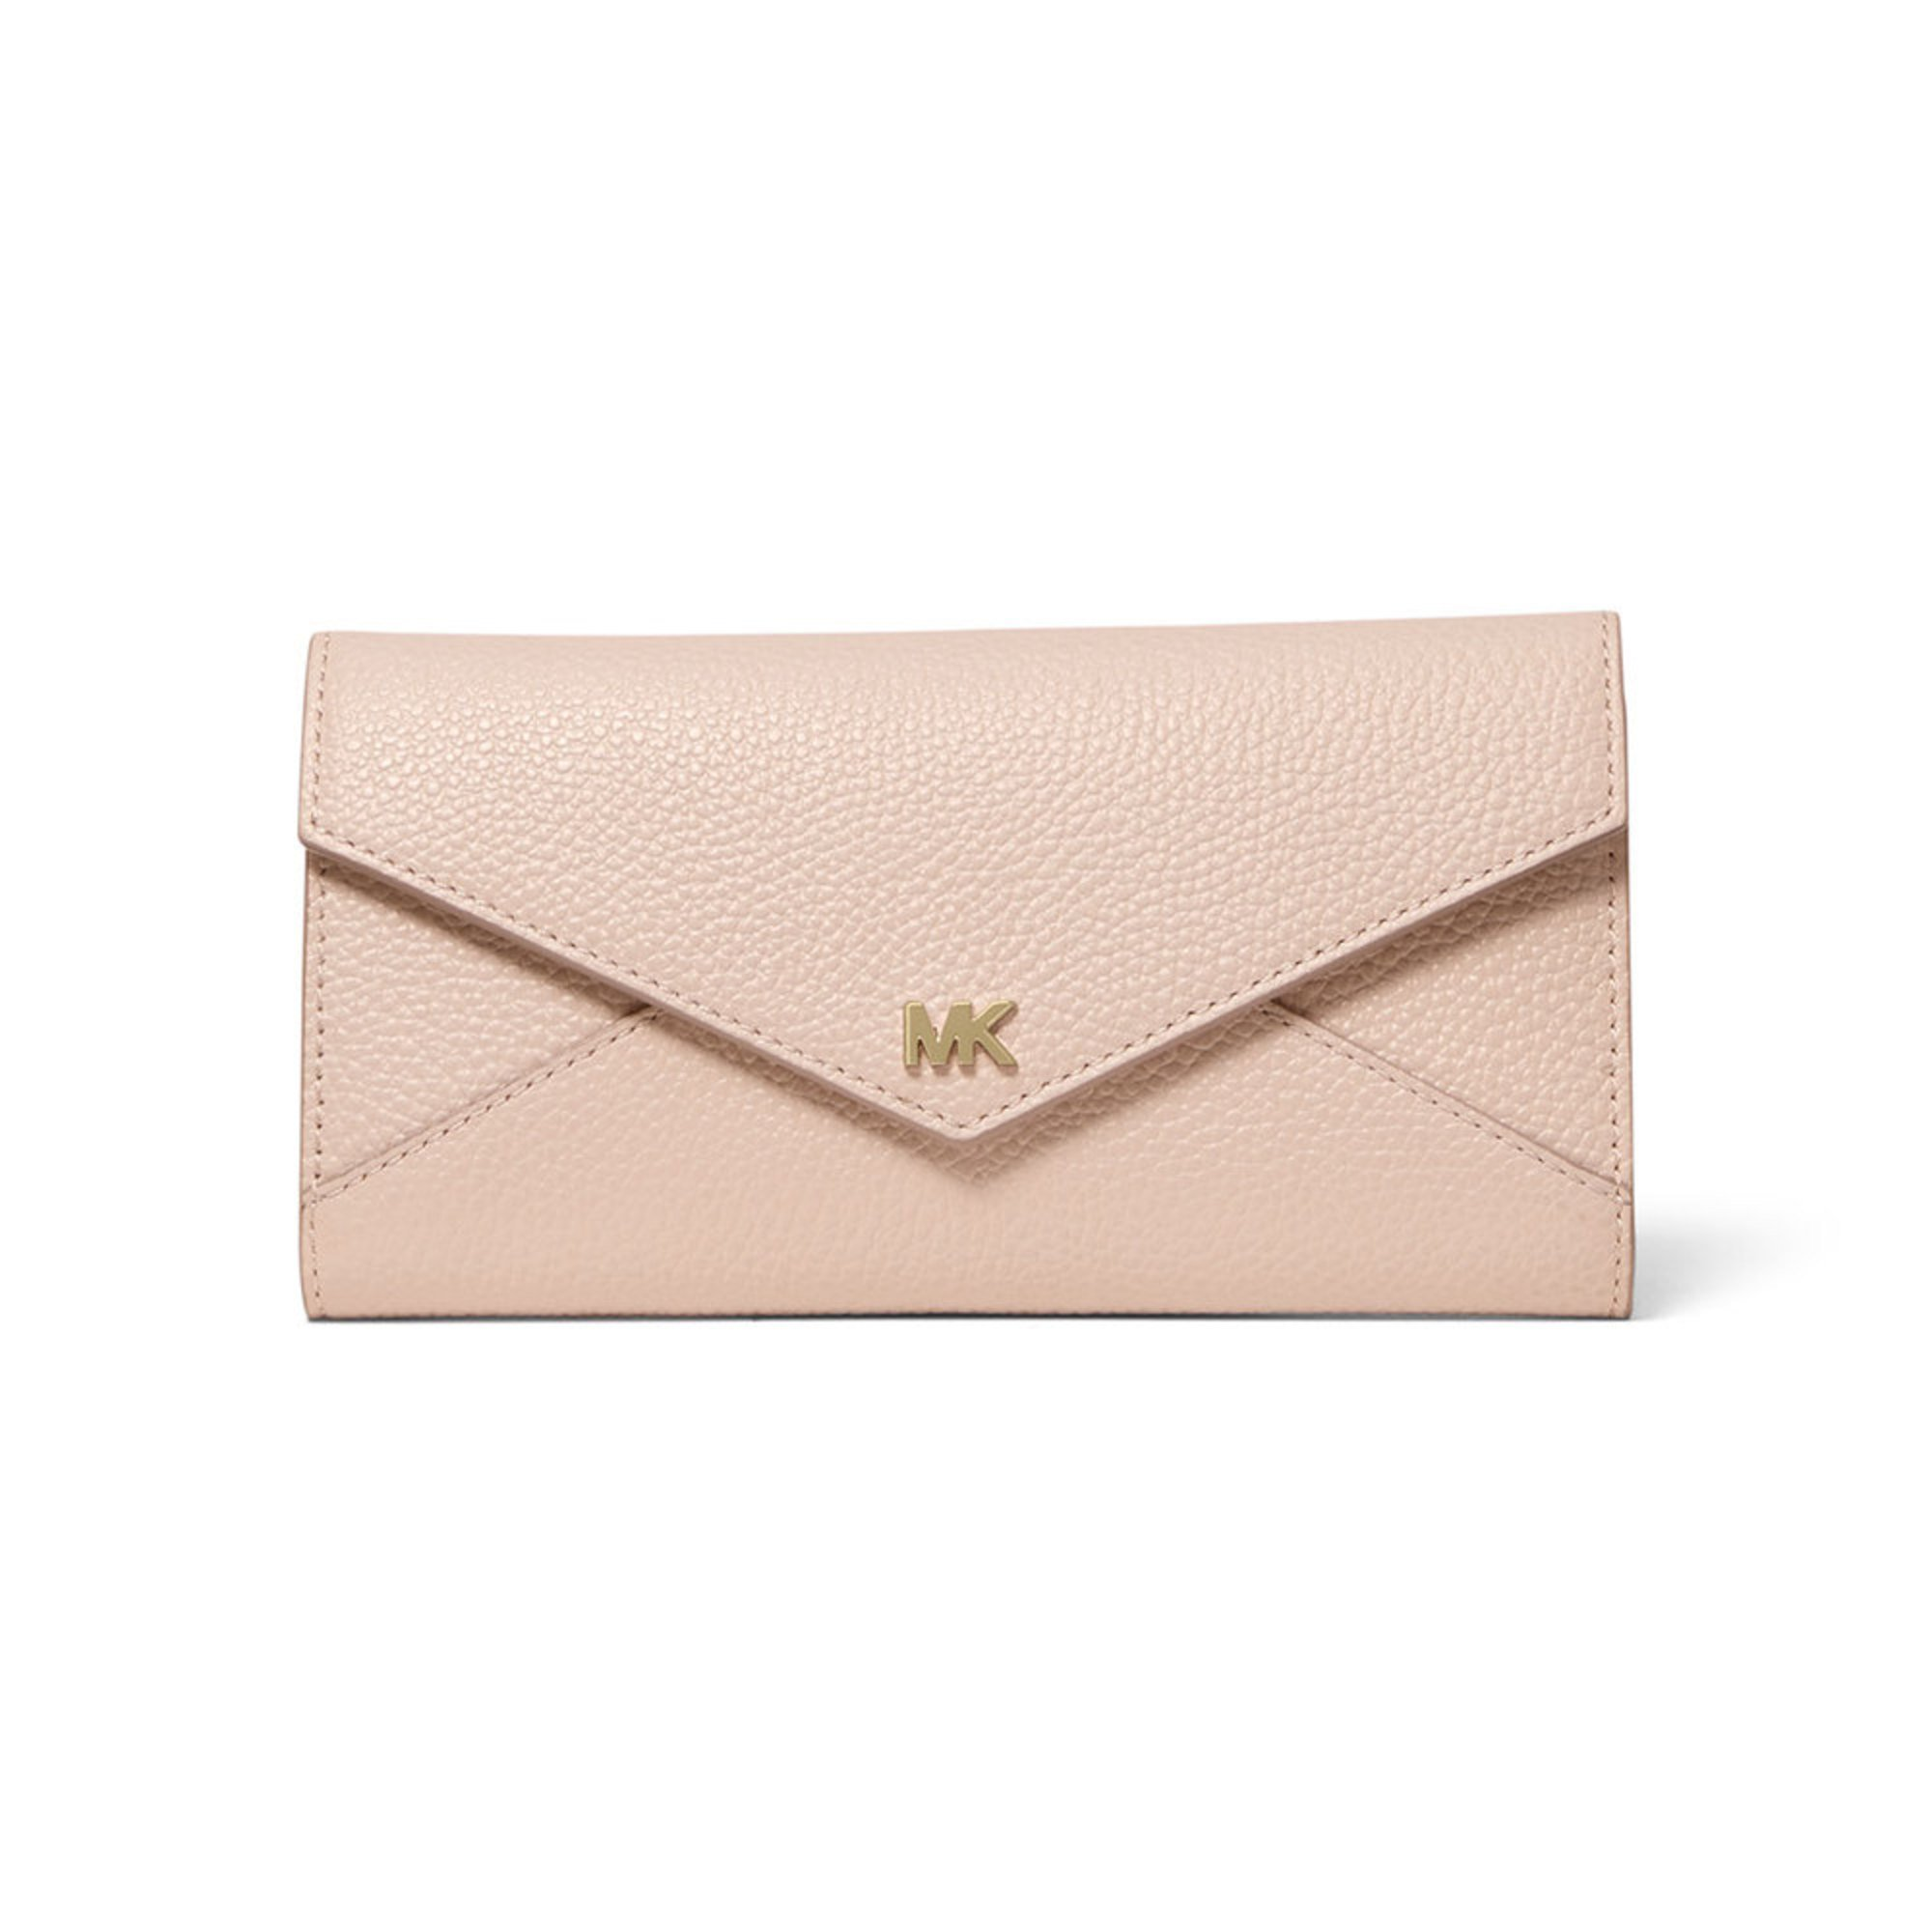 488decb1f59a Michael Kors Large Slim Envelope Trifold Wallet | Wallets | Handbags ...